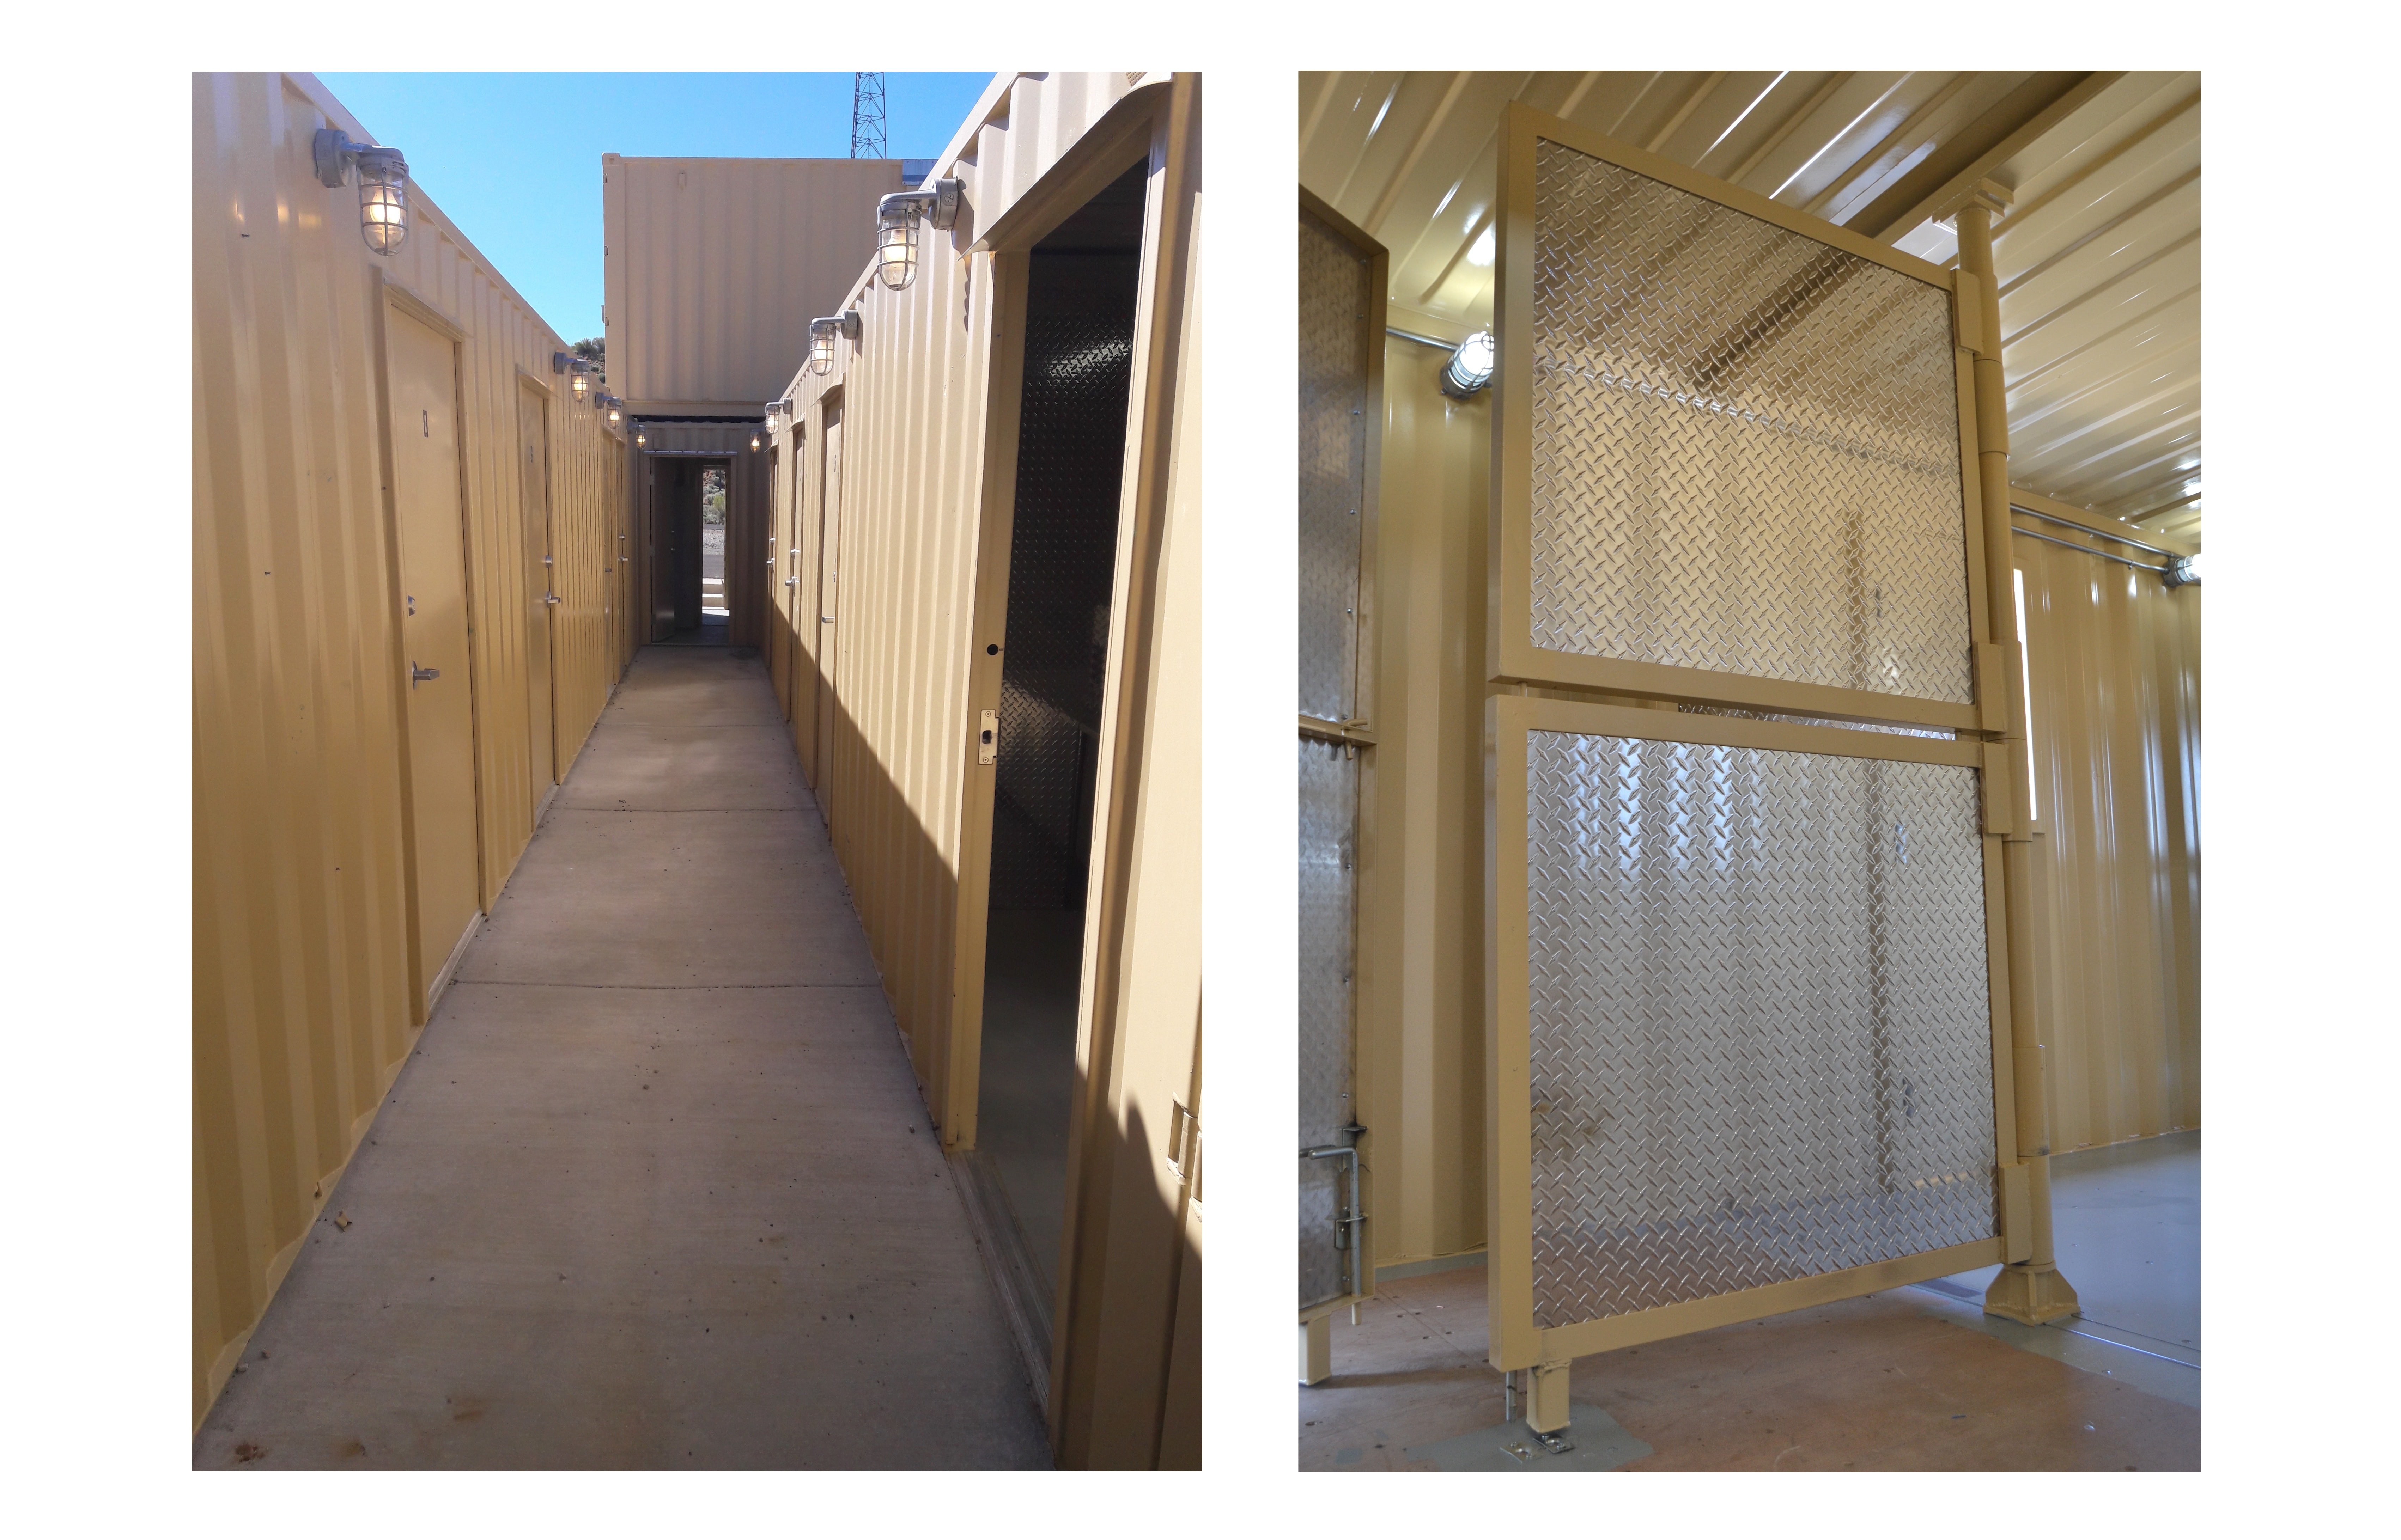 Hallways and rotating doors create a realistic training experience for emergency responders.